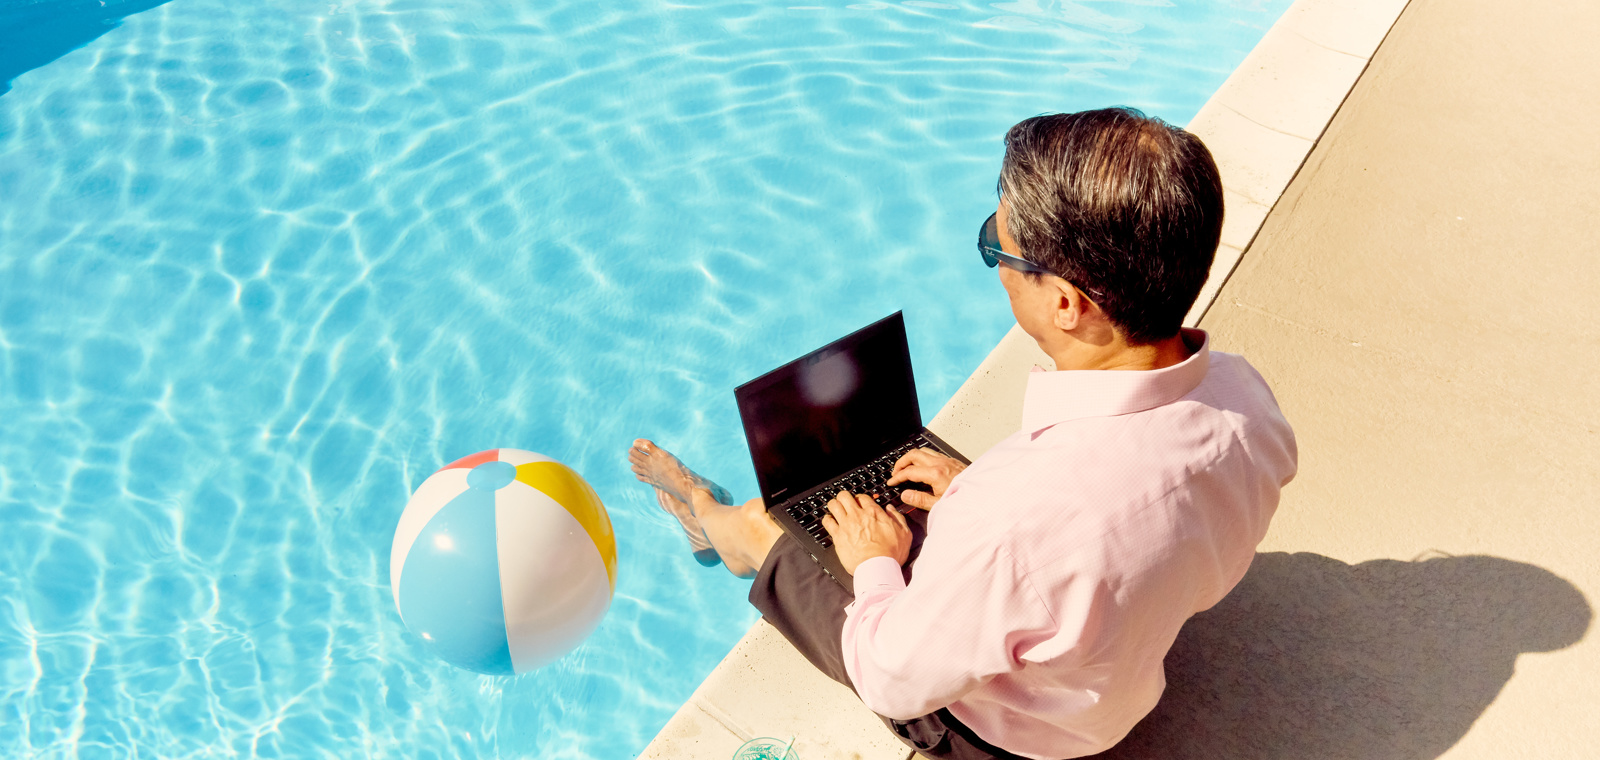 Man working on Laptop Poolside